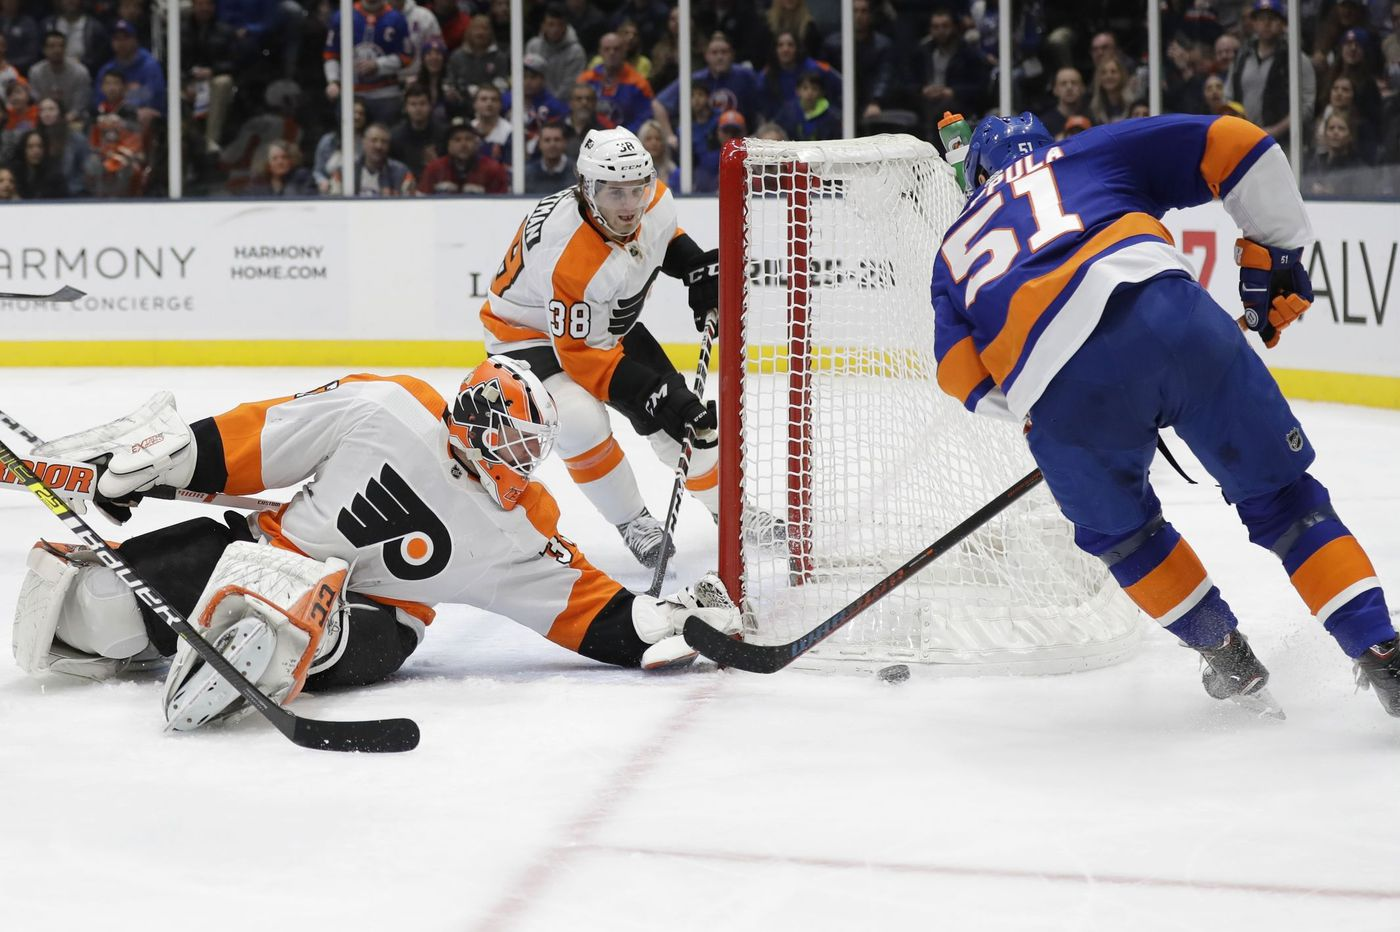 Flyers blast Islanders, 5-2, and move to within 5 points of playoff spot